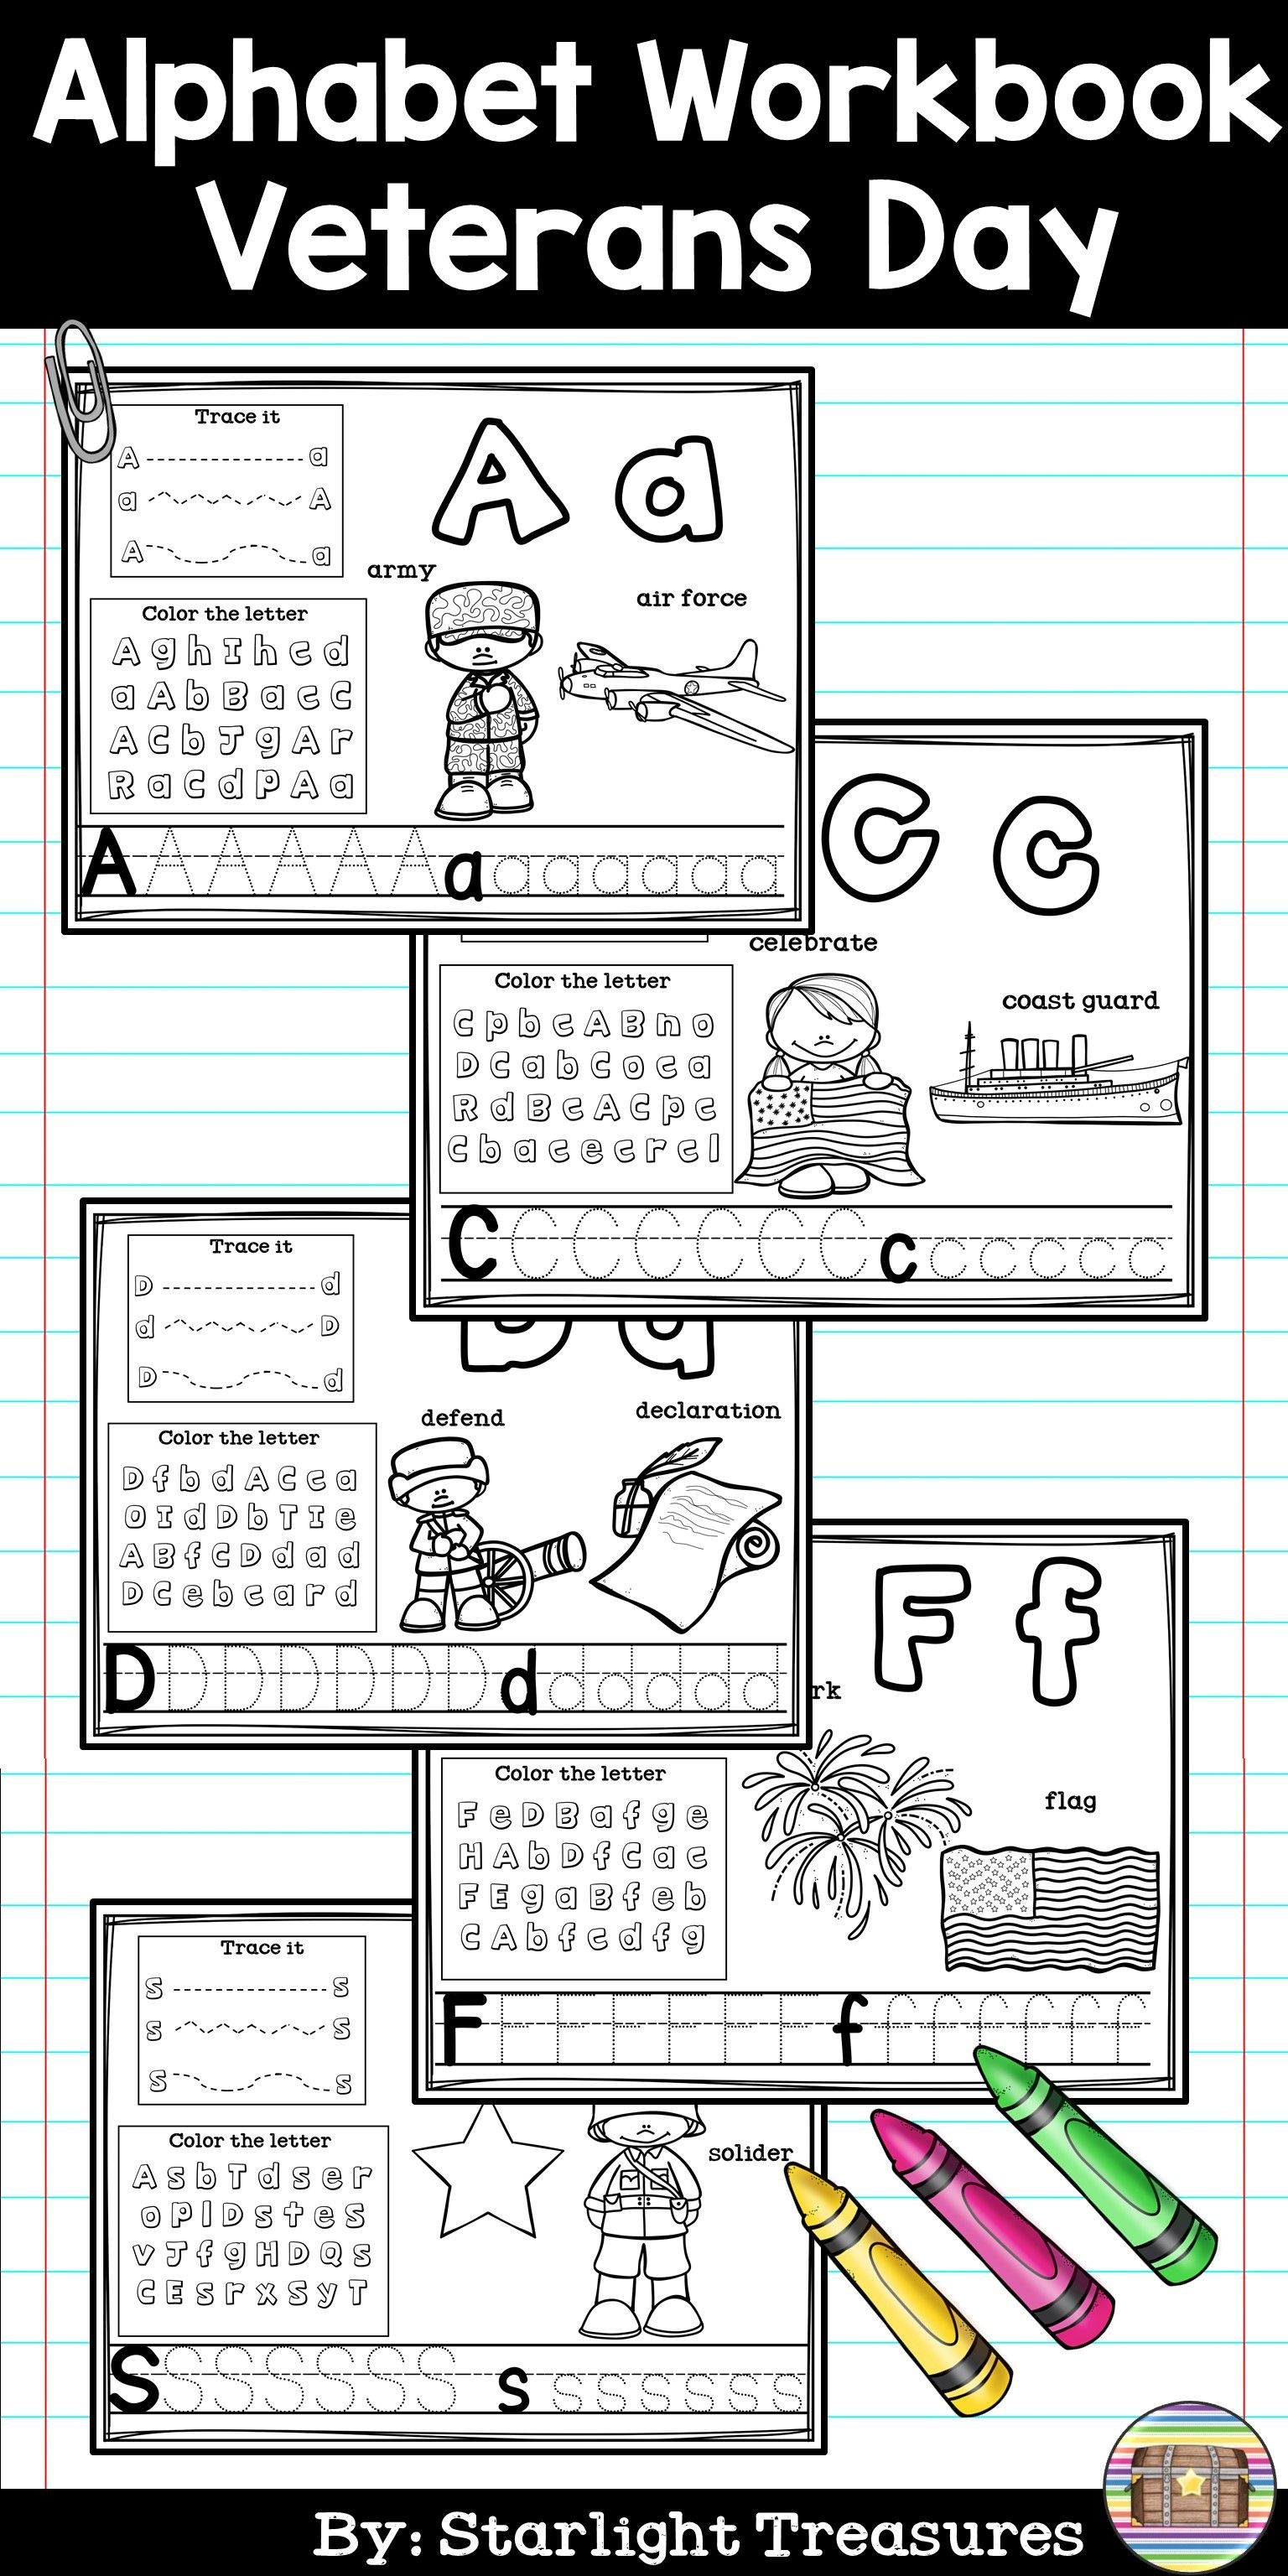 Alphabet Workbook Worksheets A Z Veterans Day Teaching The